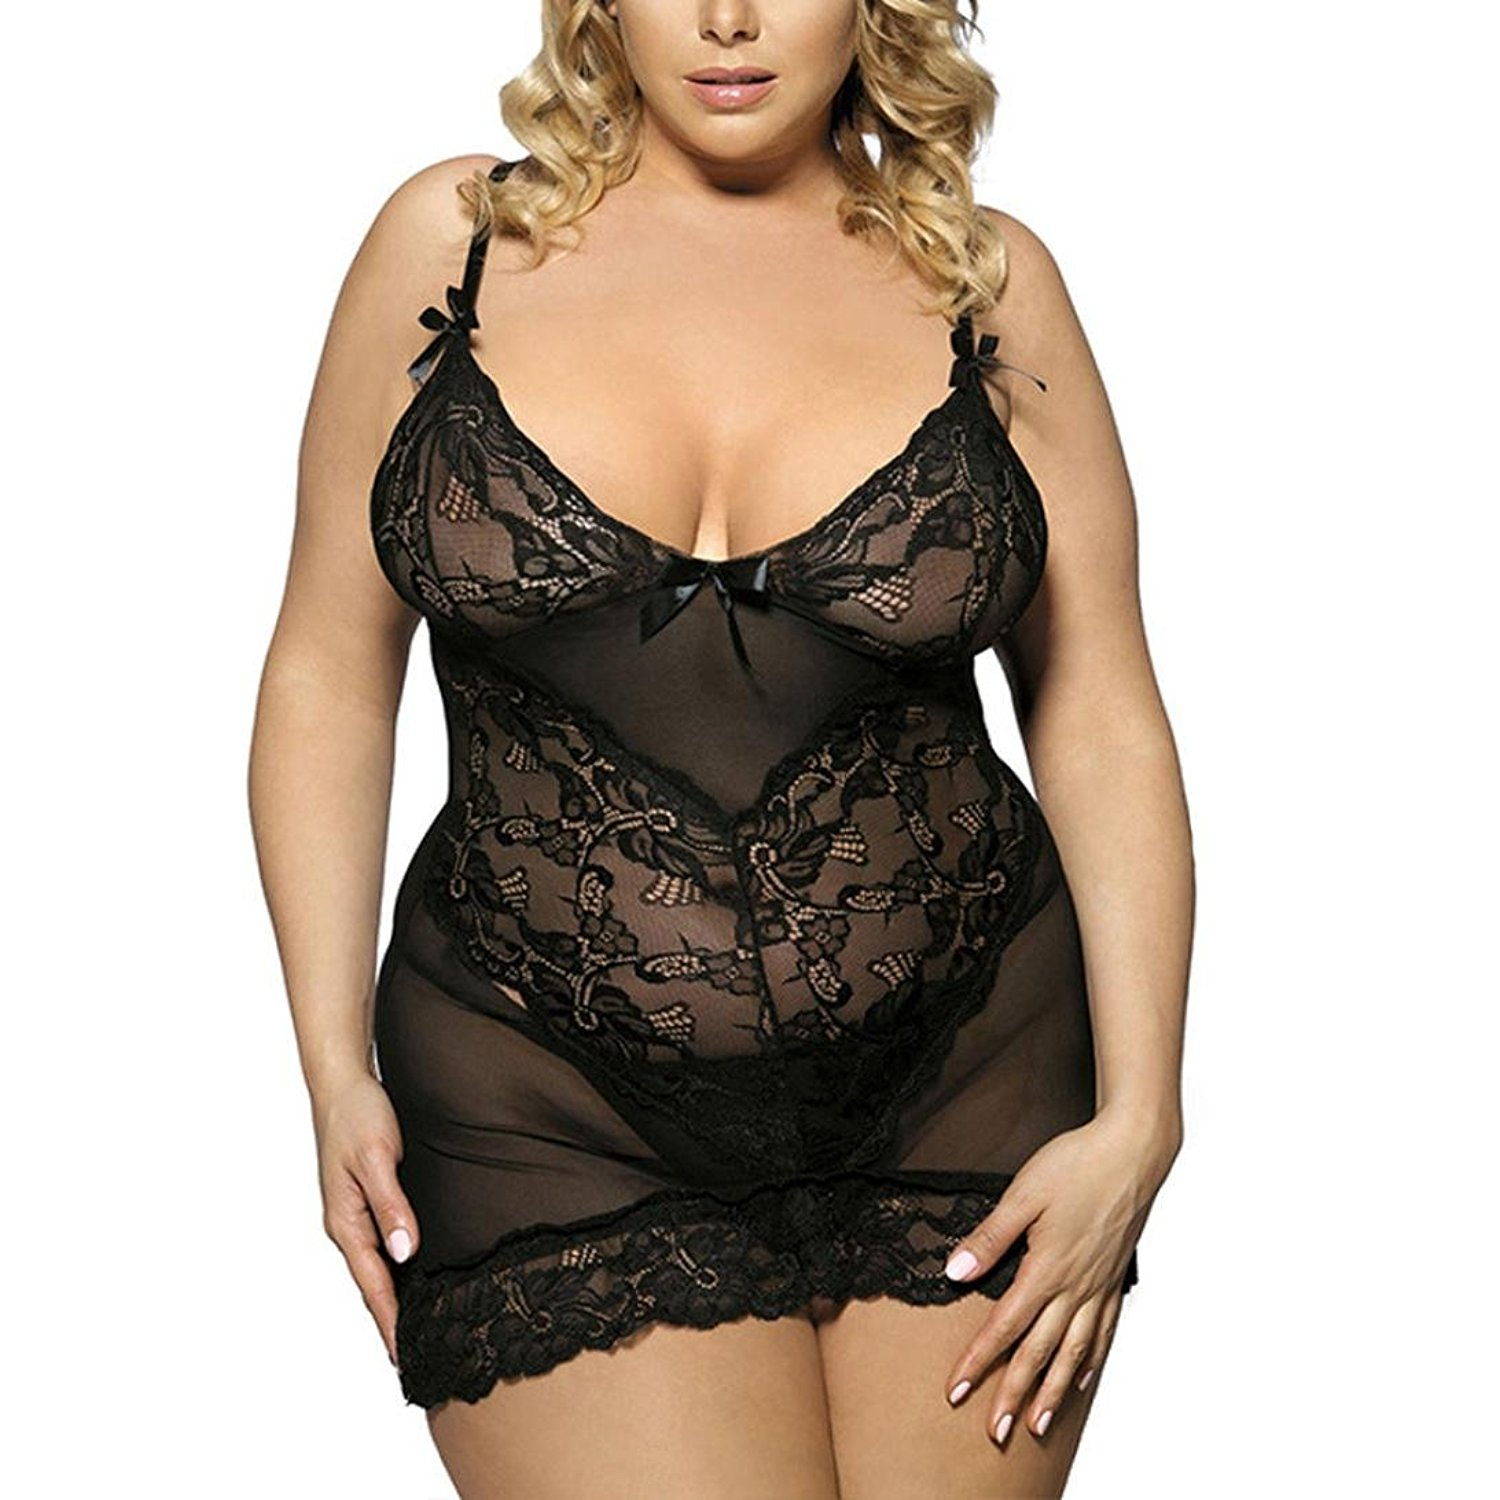 08c3e59fd Get Quotations · Tootu Women Fashion Plus Size L-5XL Sexy Lace Sleepwear  Plus Size Uniforms Temptation Nightwear